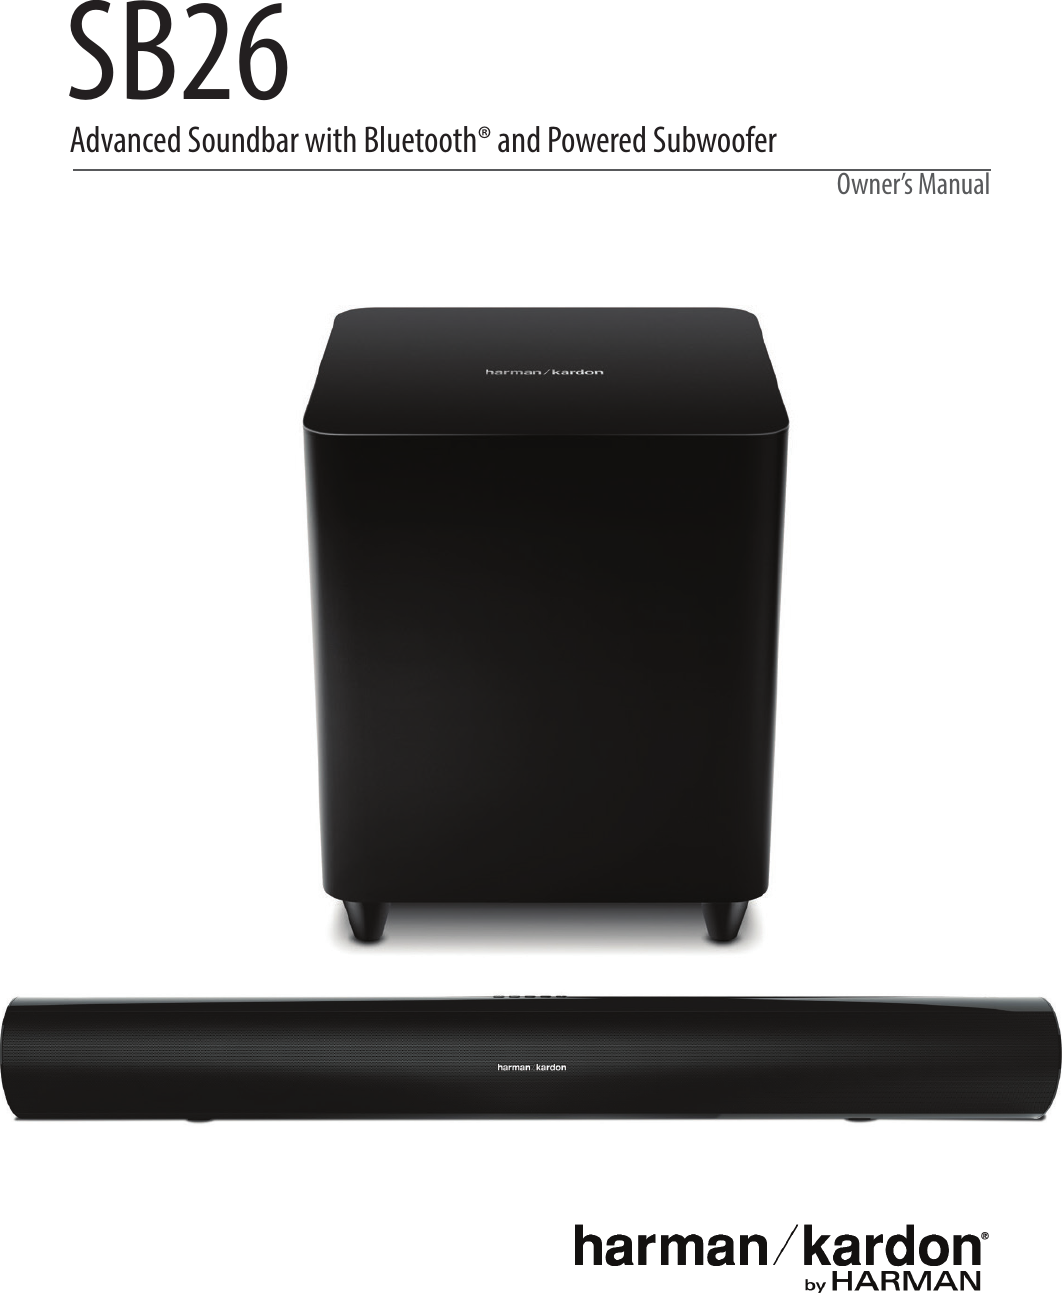 Harman Kardon Sb 26 Owners Manual ManualsLib Makes It Easy